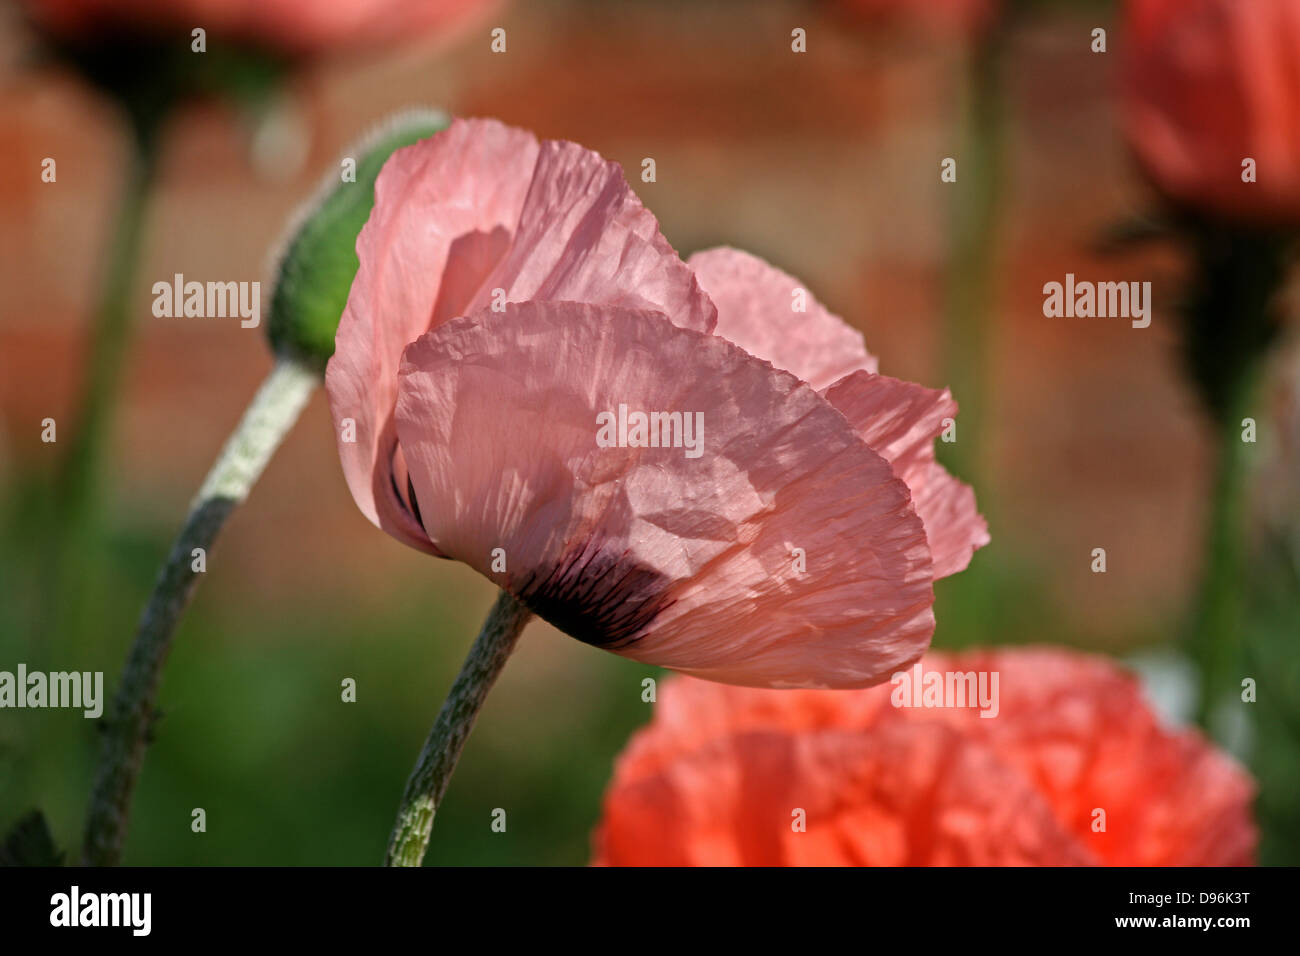 Poppy, Peachy/Pink Poppies in afternoon sunlight. - Stock Image